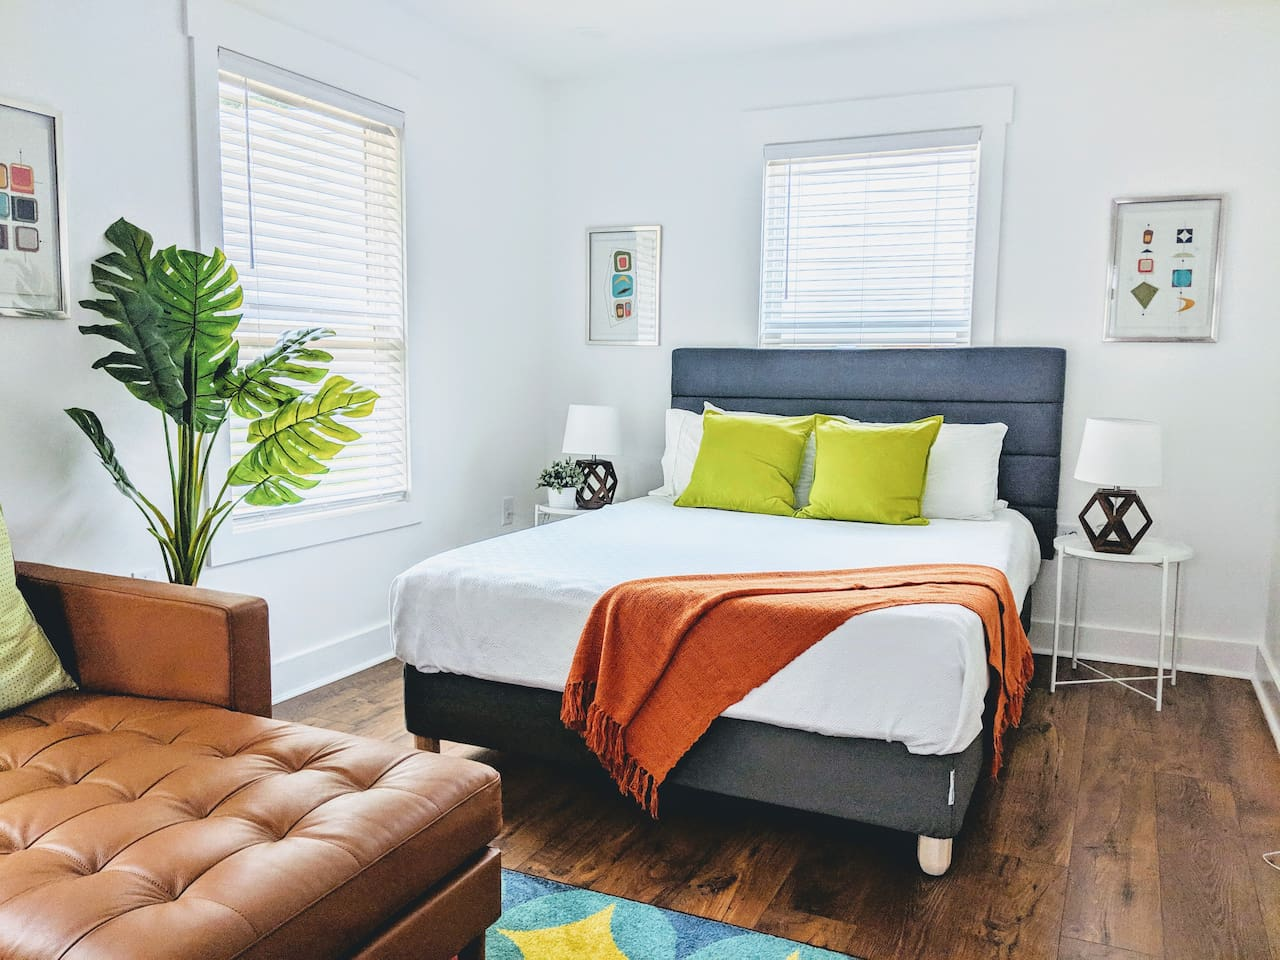 Comfortable queen size bed.  Bright, airy lots of natural light